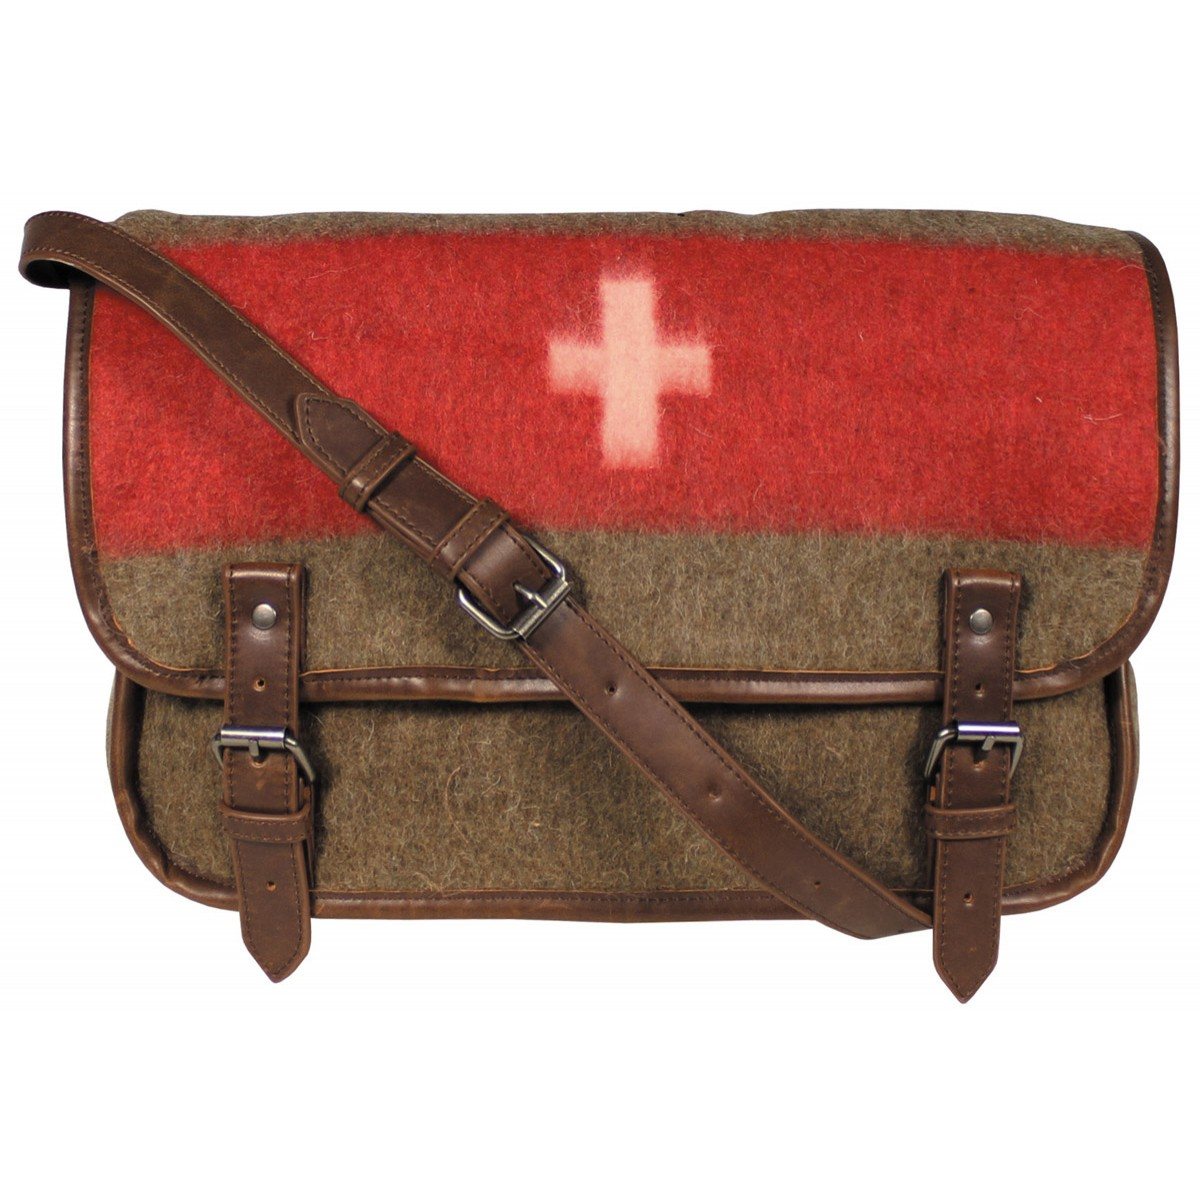 PureTrash® High Grade Vintage Retro WW2 Look Swiss Military Wool Shoulder Bag